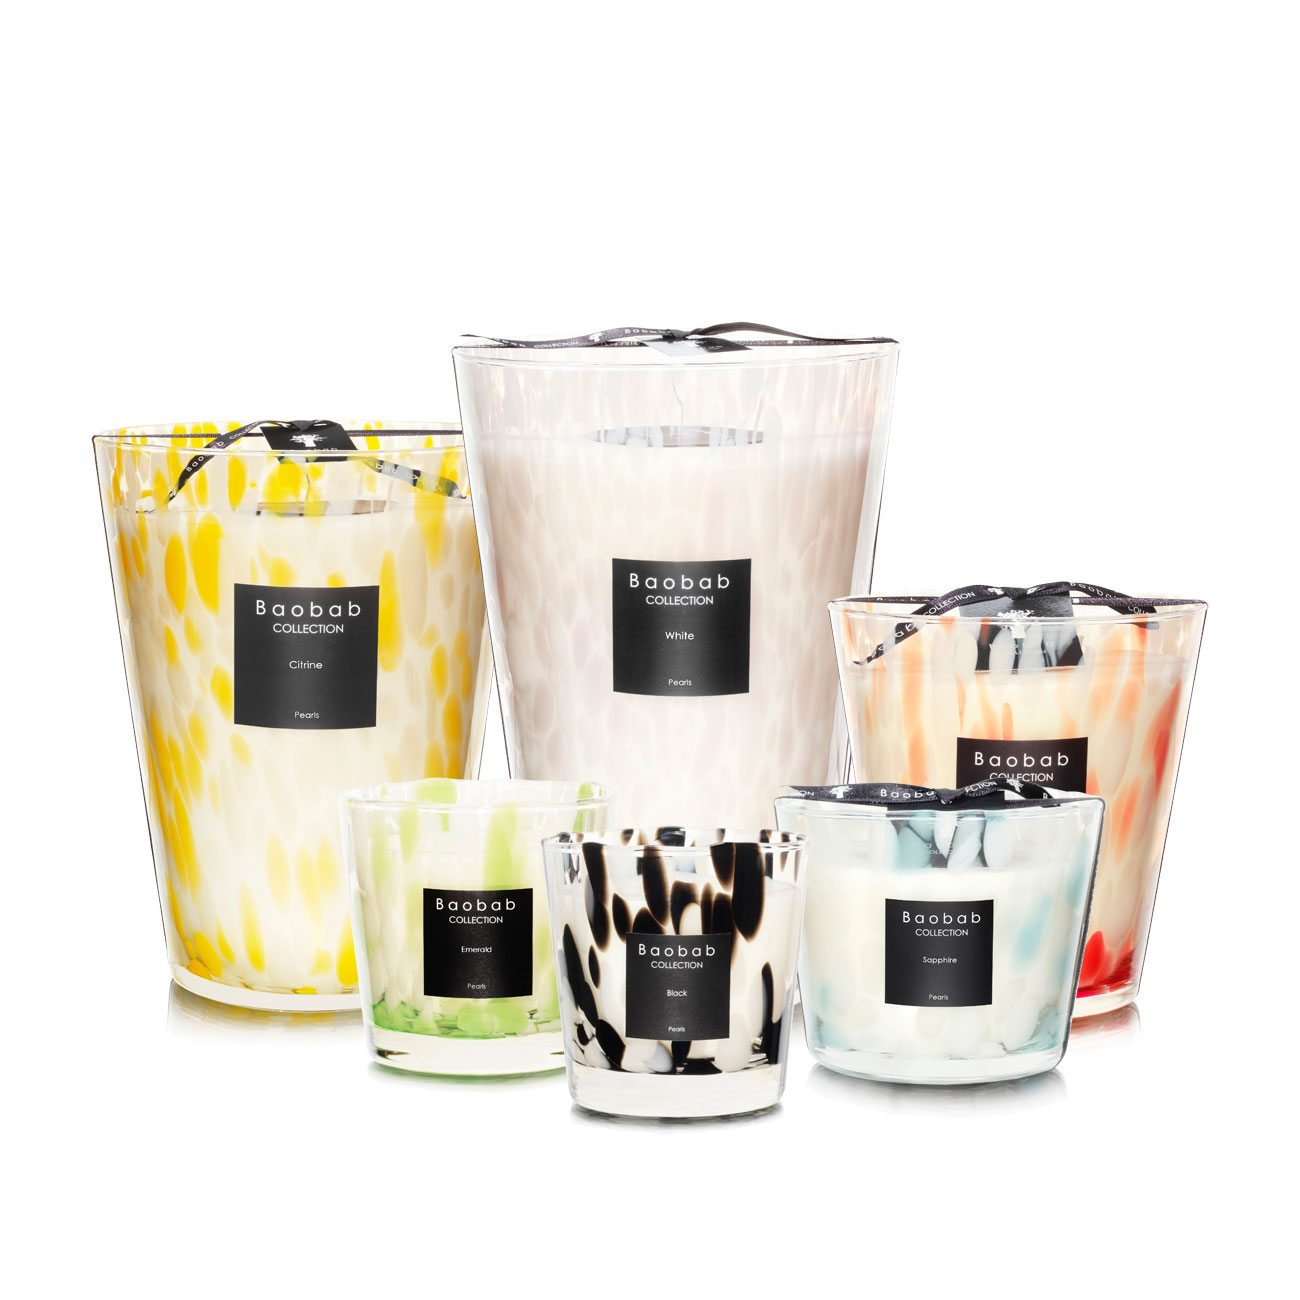 Baobab Pearls Scented Candle Collection